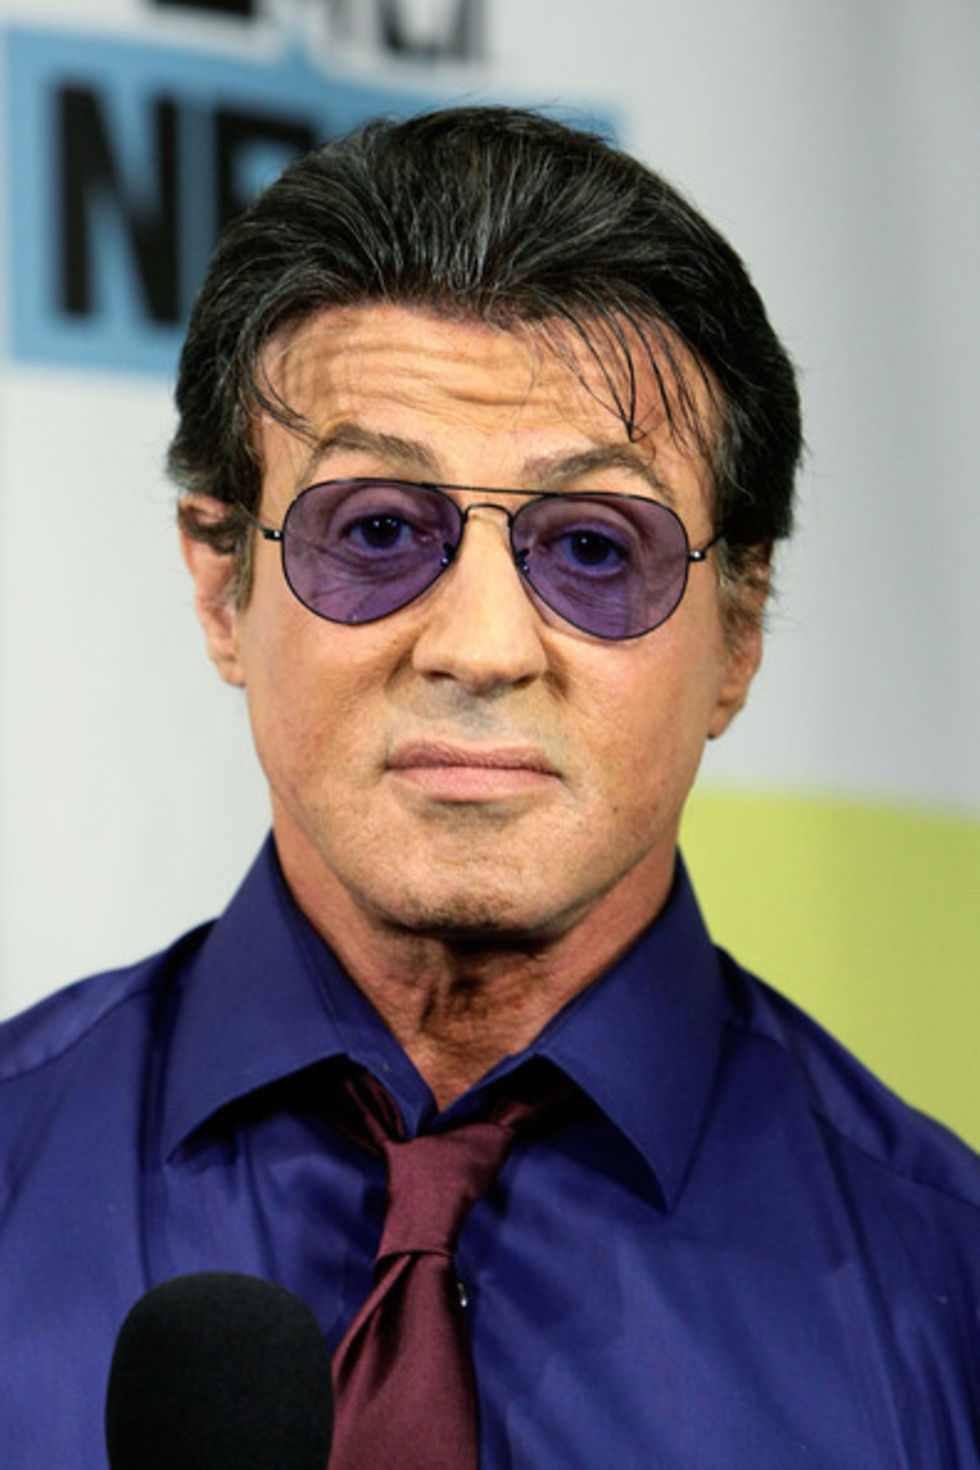 Kenentos: Sylvester Stallone Weight and Height